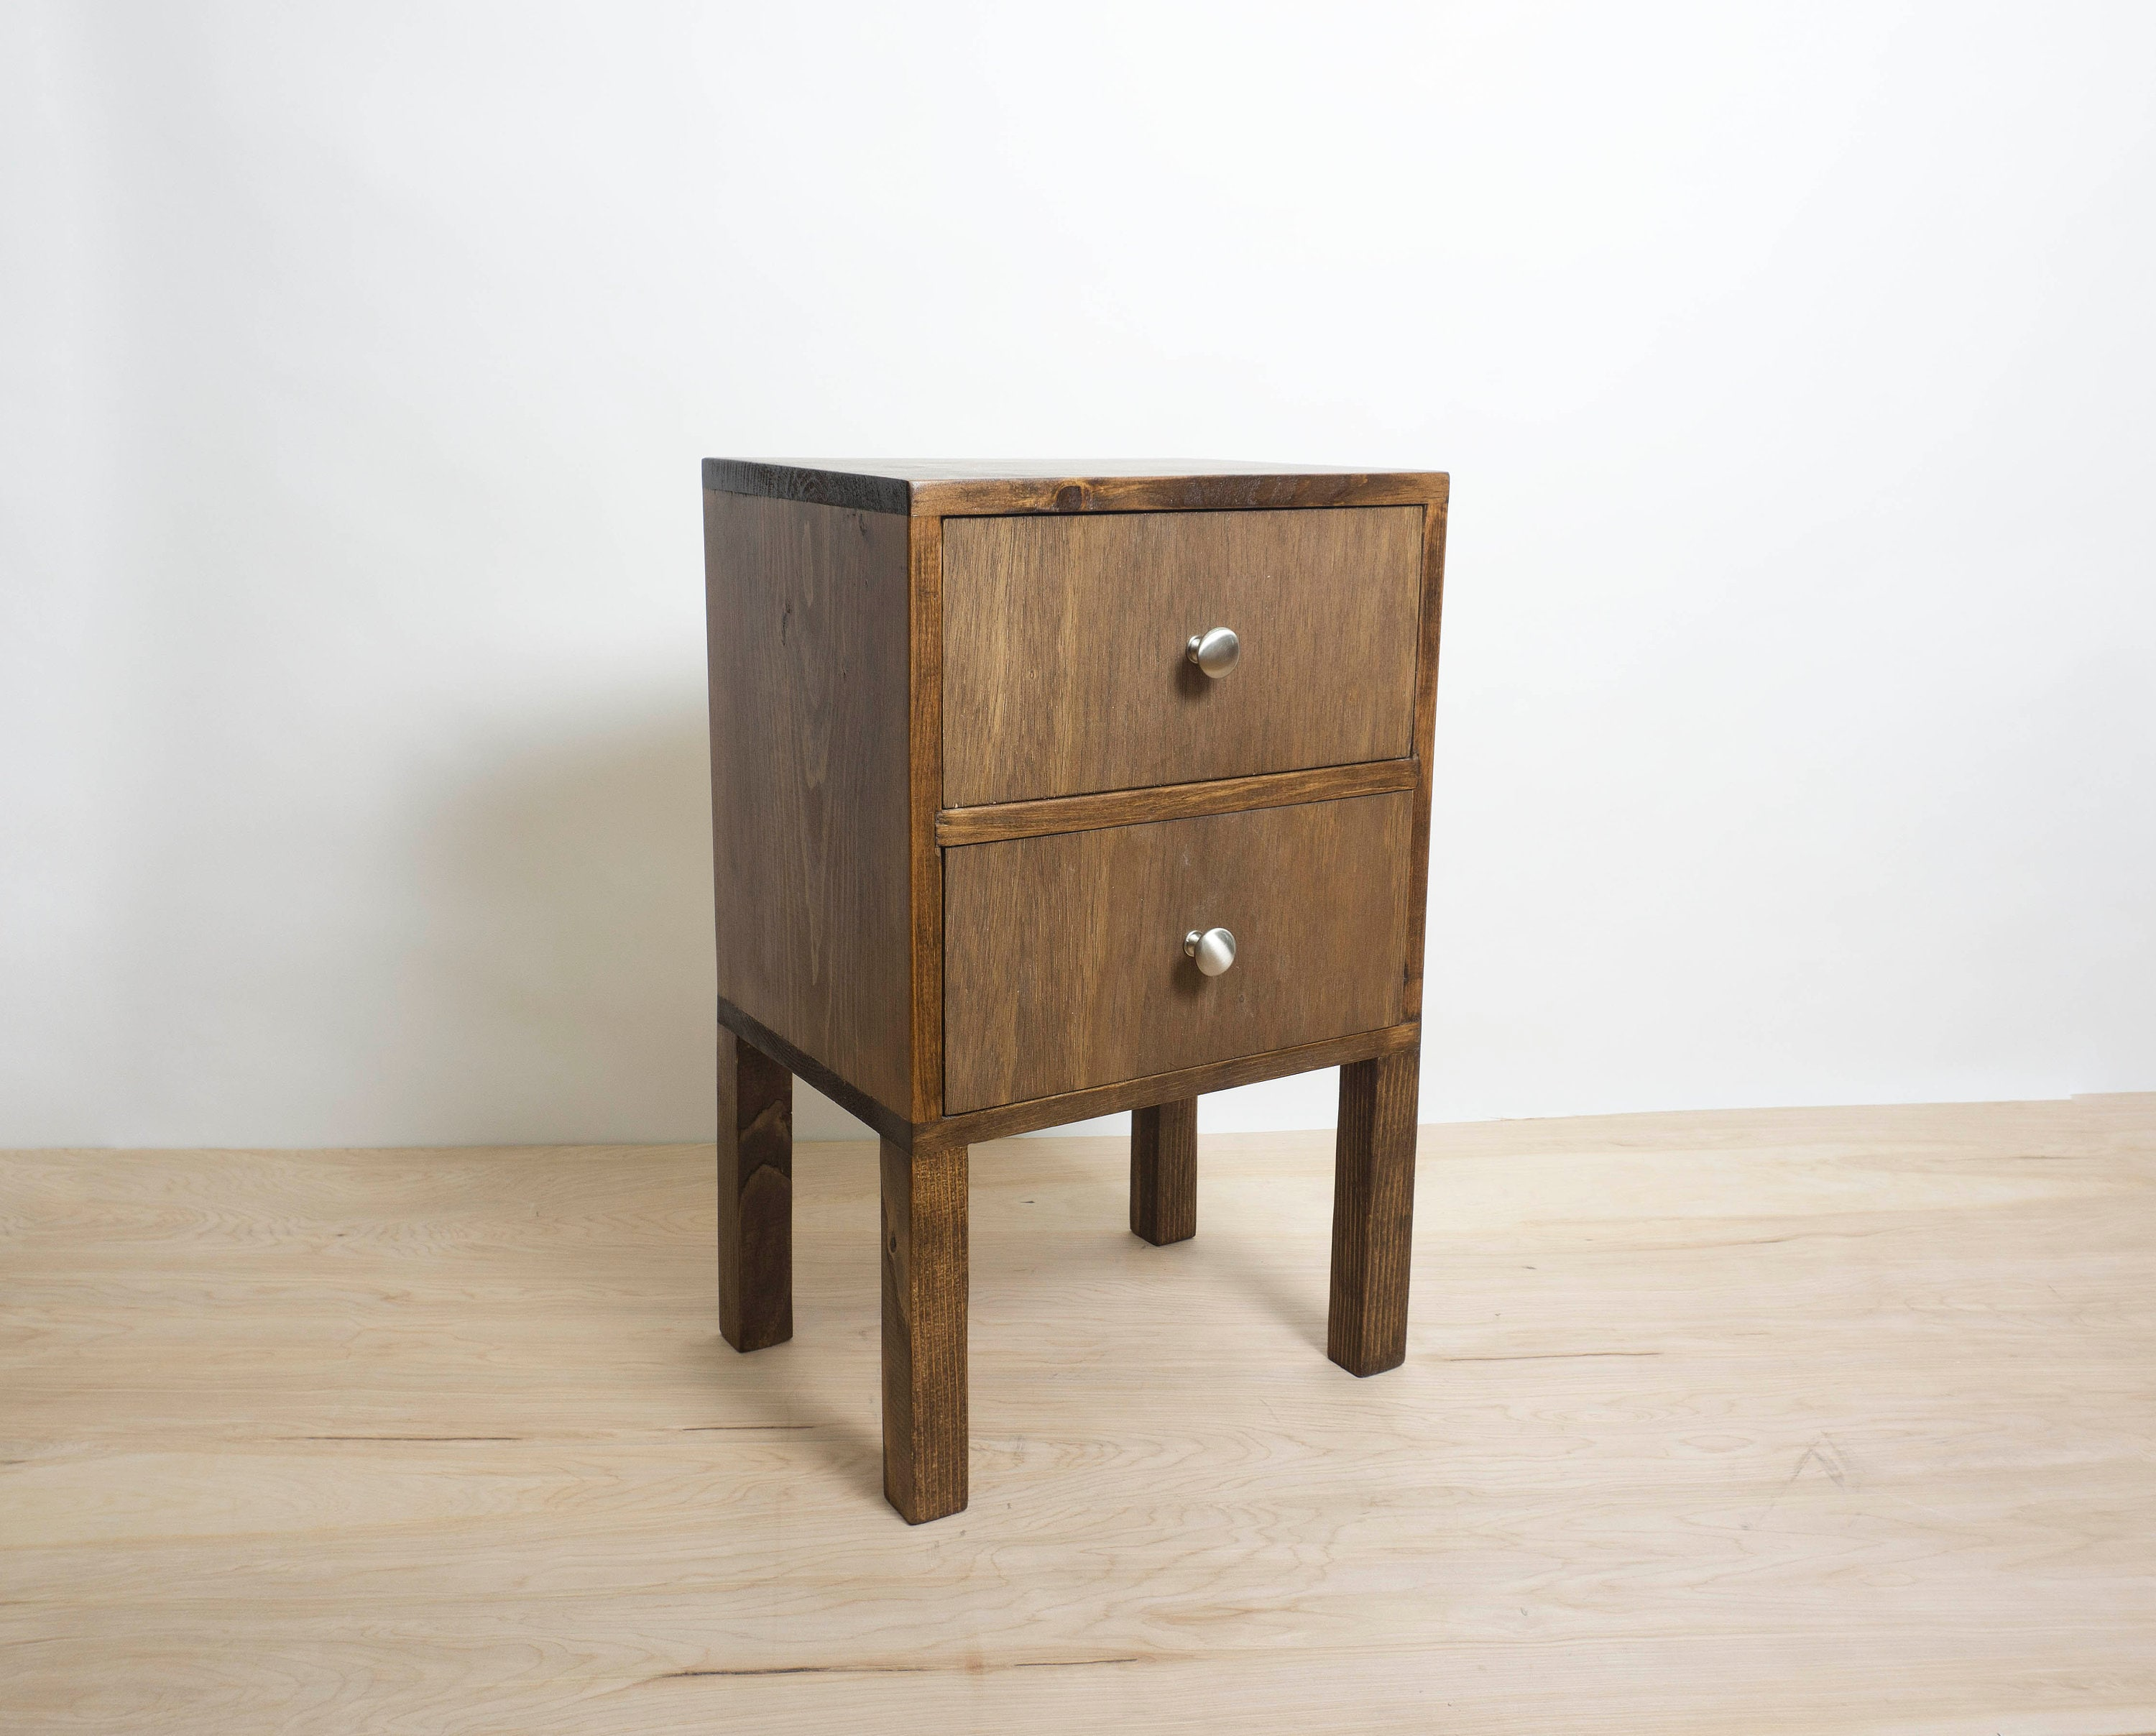 Delicieux Square Wood Nightstand, Simple Side Table, Wood Side Table, Bedside Table,  Reclaimed Wood, End Table Storage With Drawers  Walnut